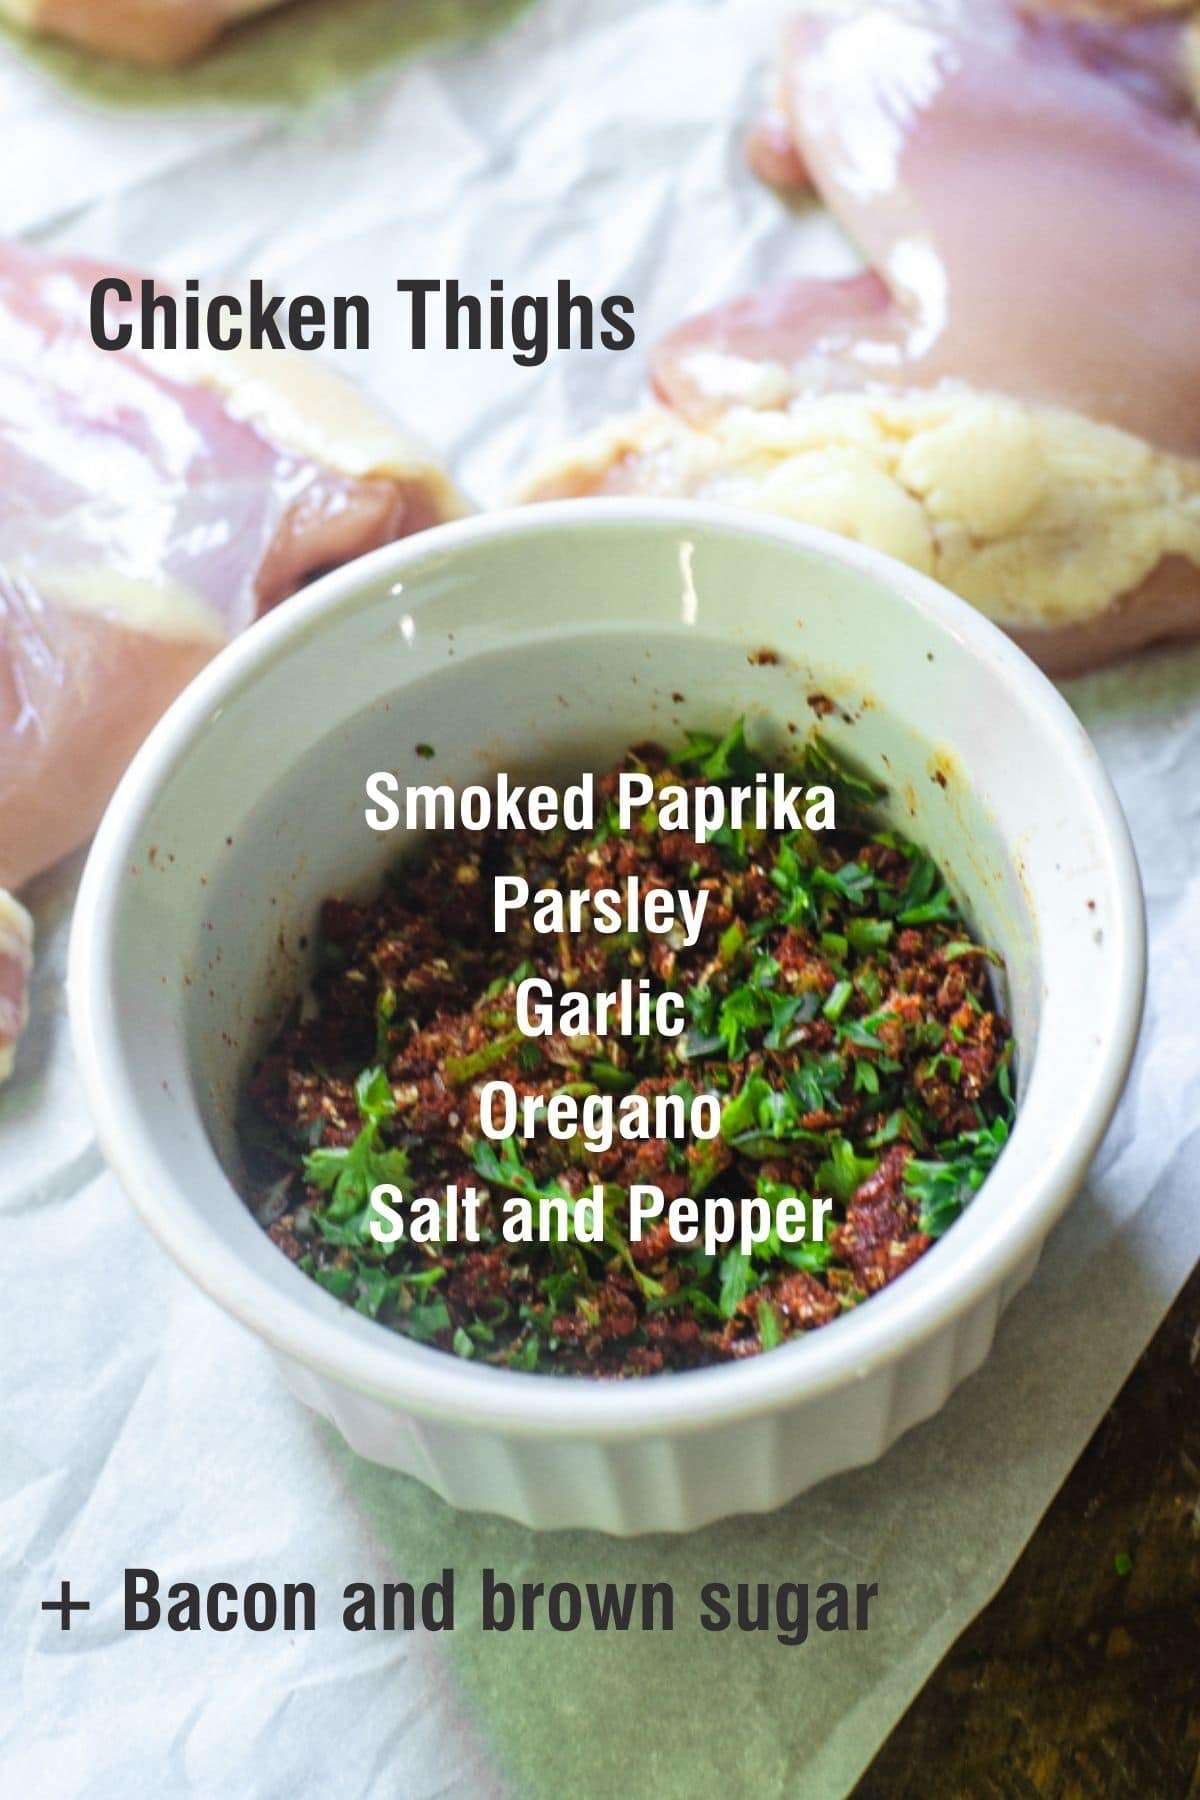 Photo of a ramekin next to raw chicken with text overlay of ingredients to make bacon wrapped chicken thighs.